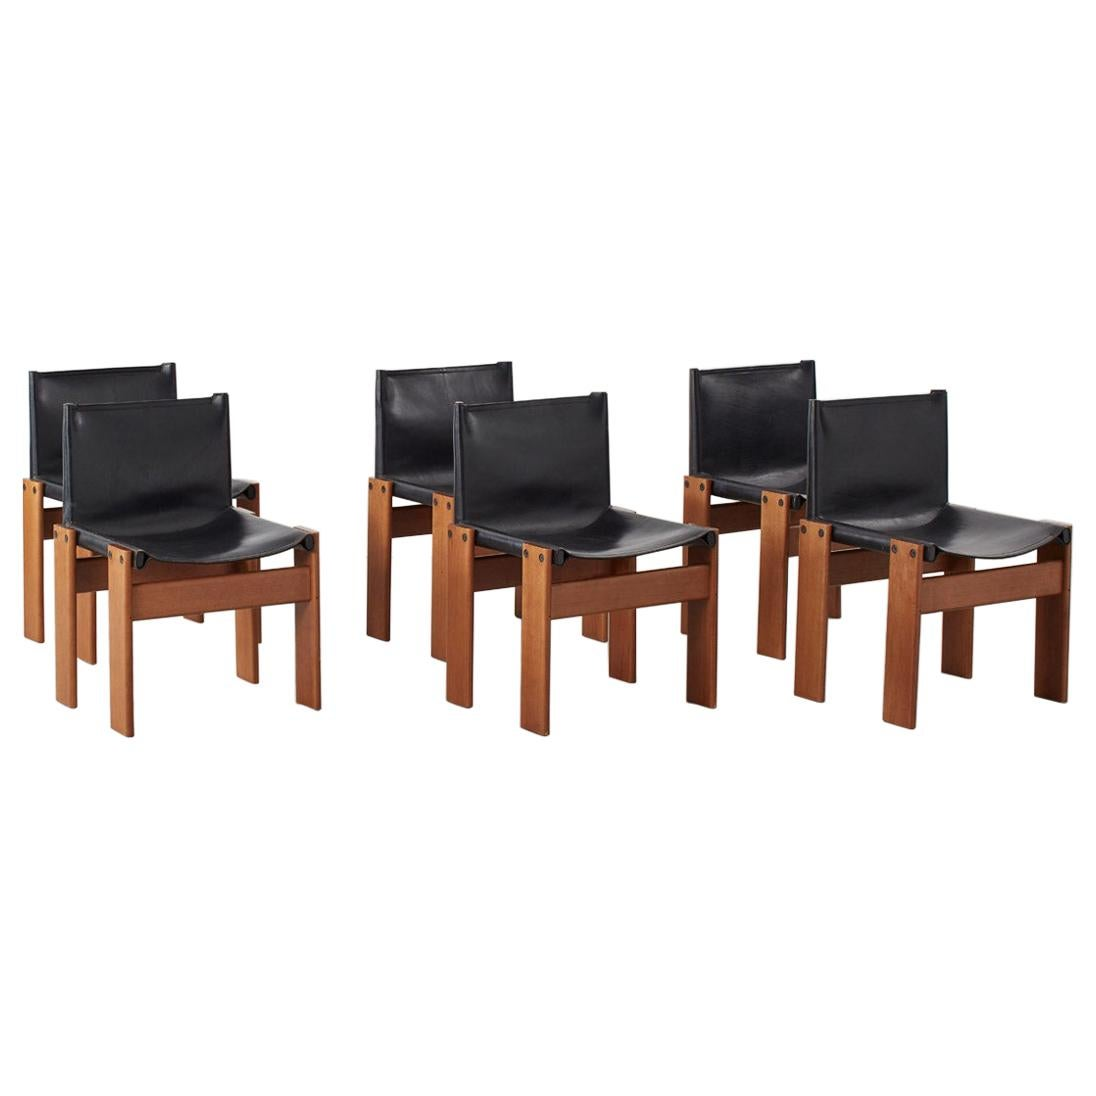 Afra & Tobia Scarpa Monk Black Chairs for Molteni, Italy 1974 4 Available